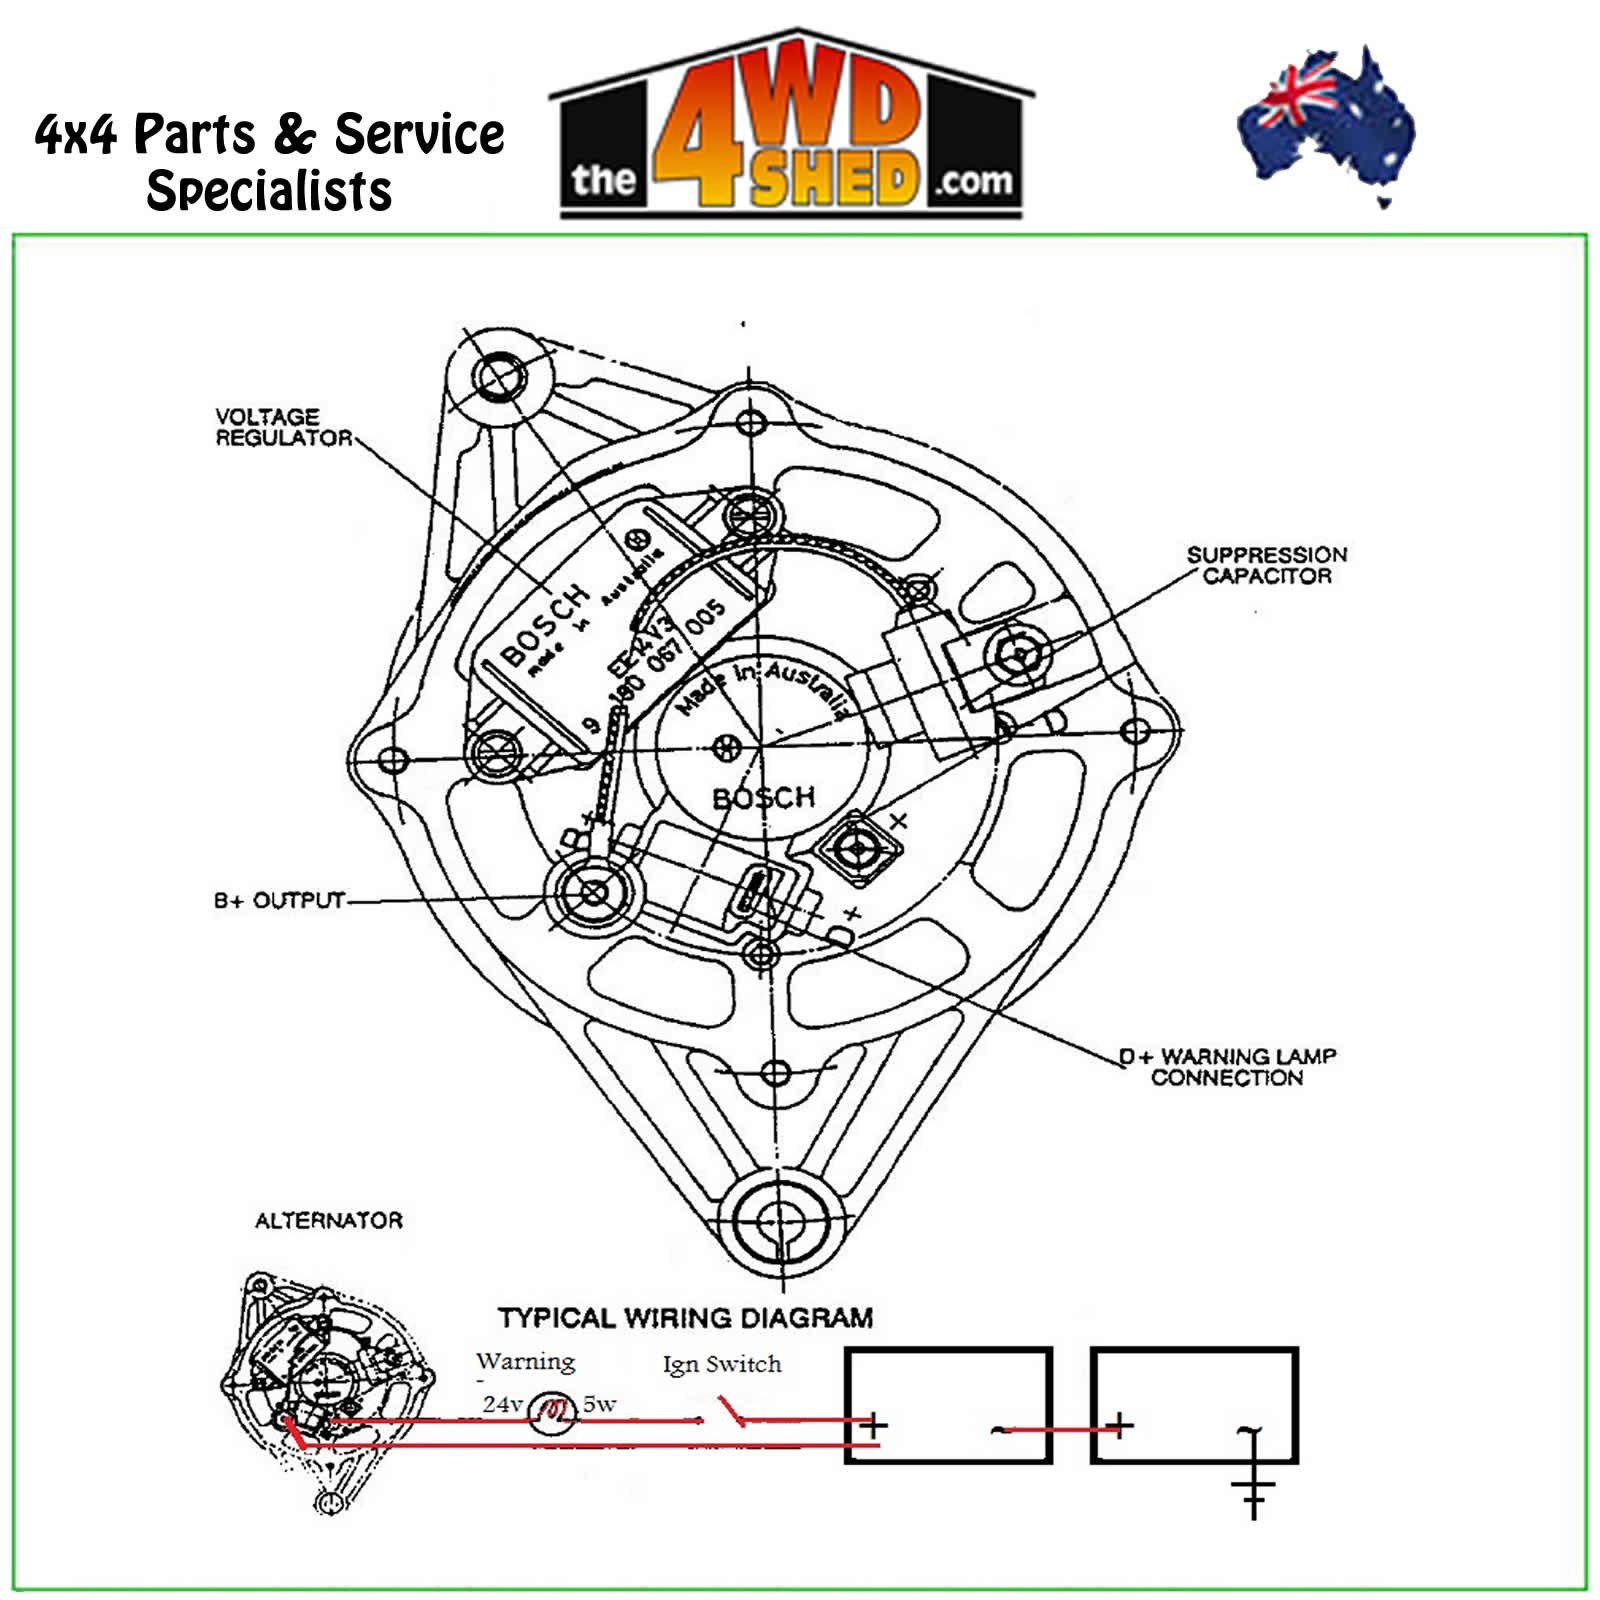 Valeo Alternator Diagram - Wiring Diagram Online